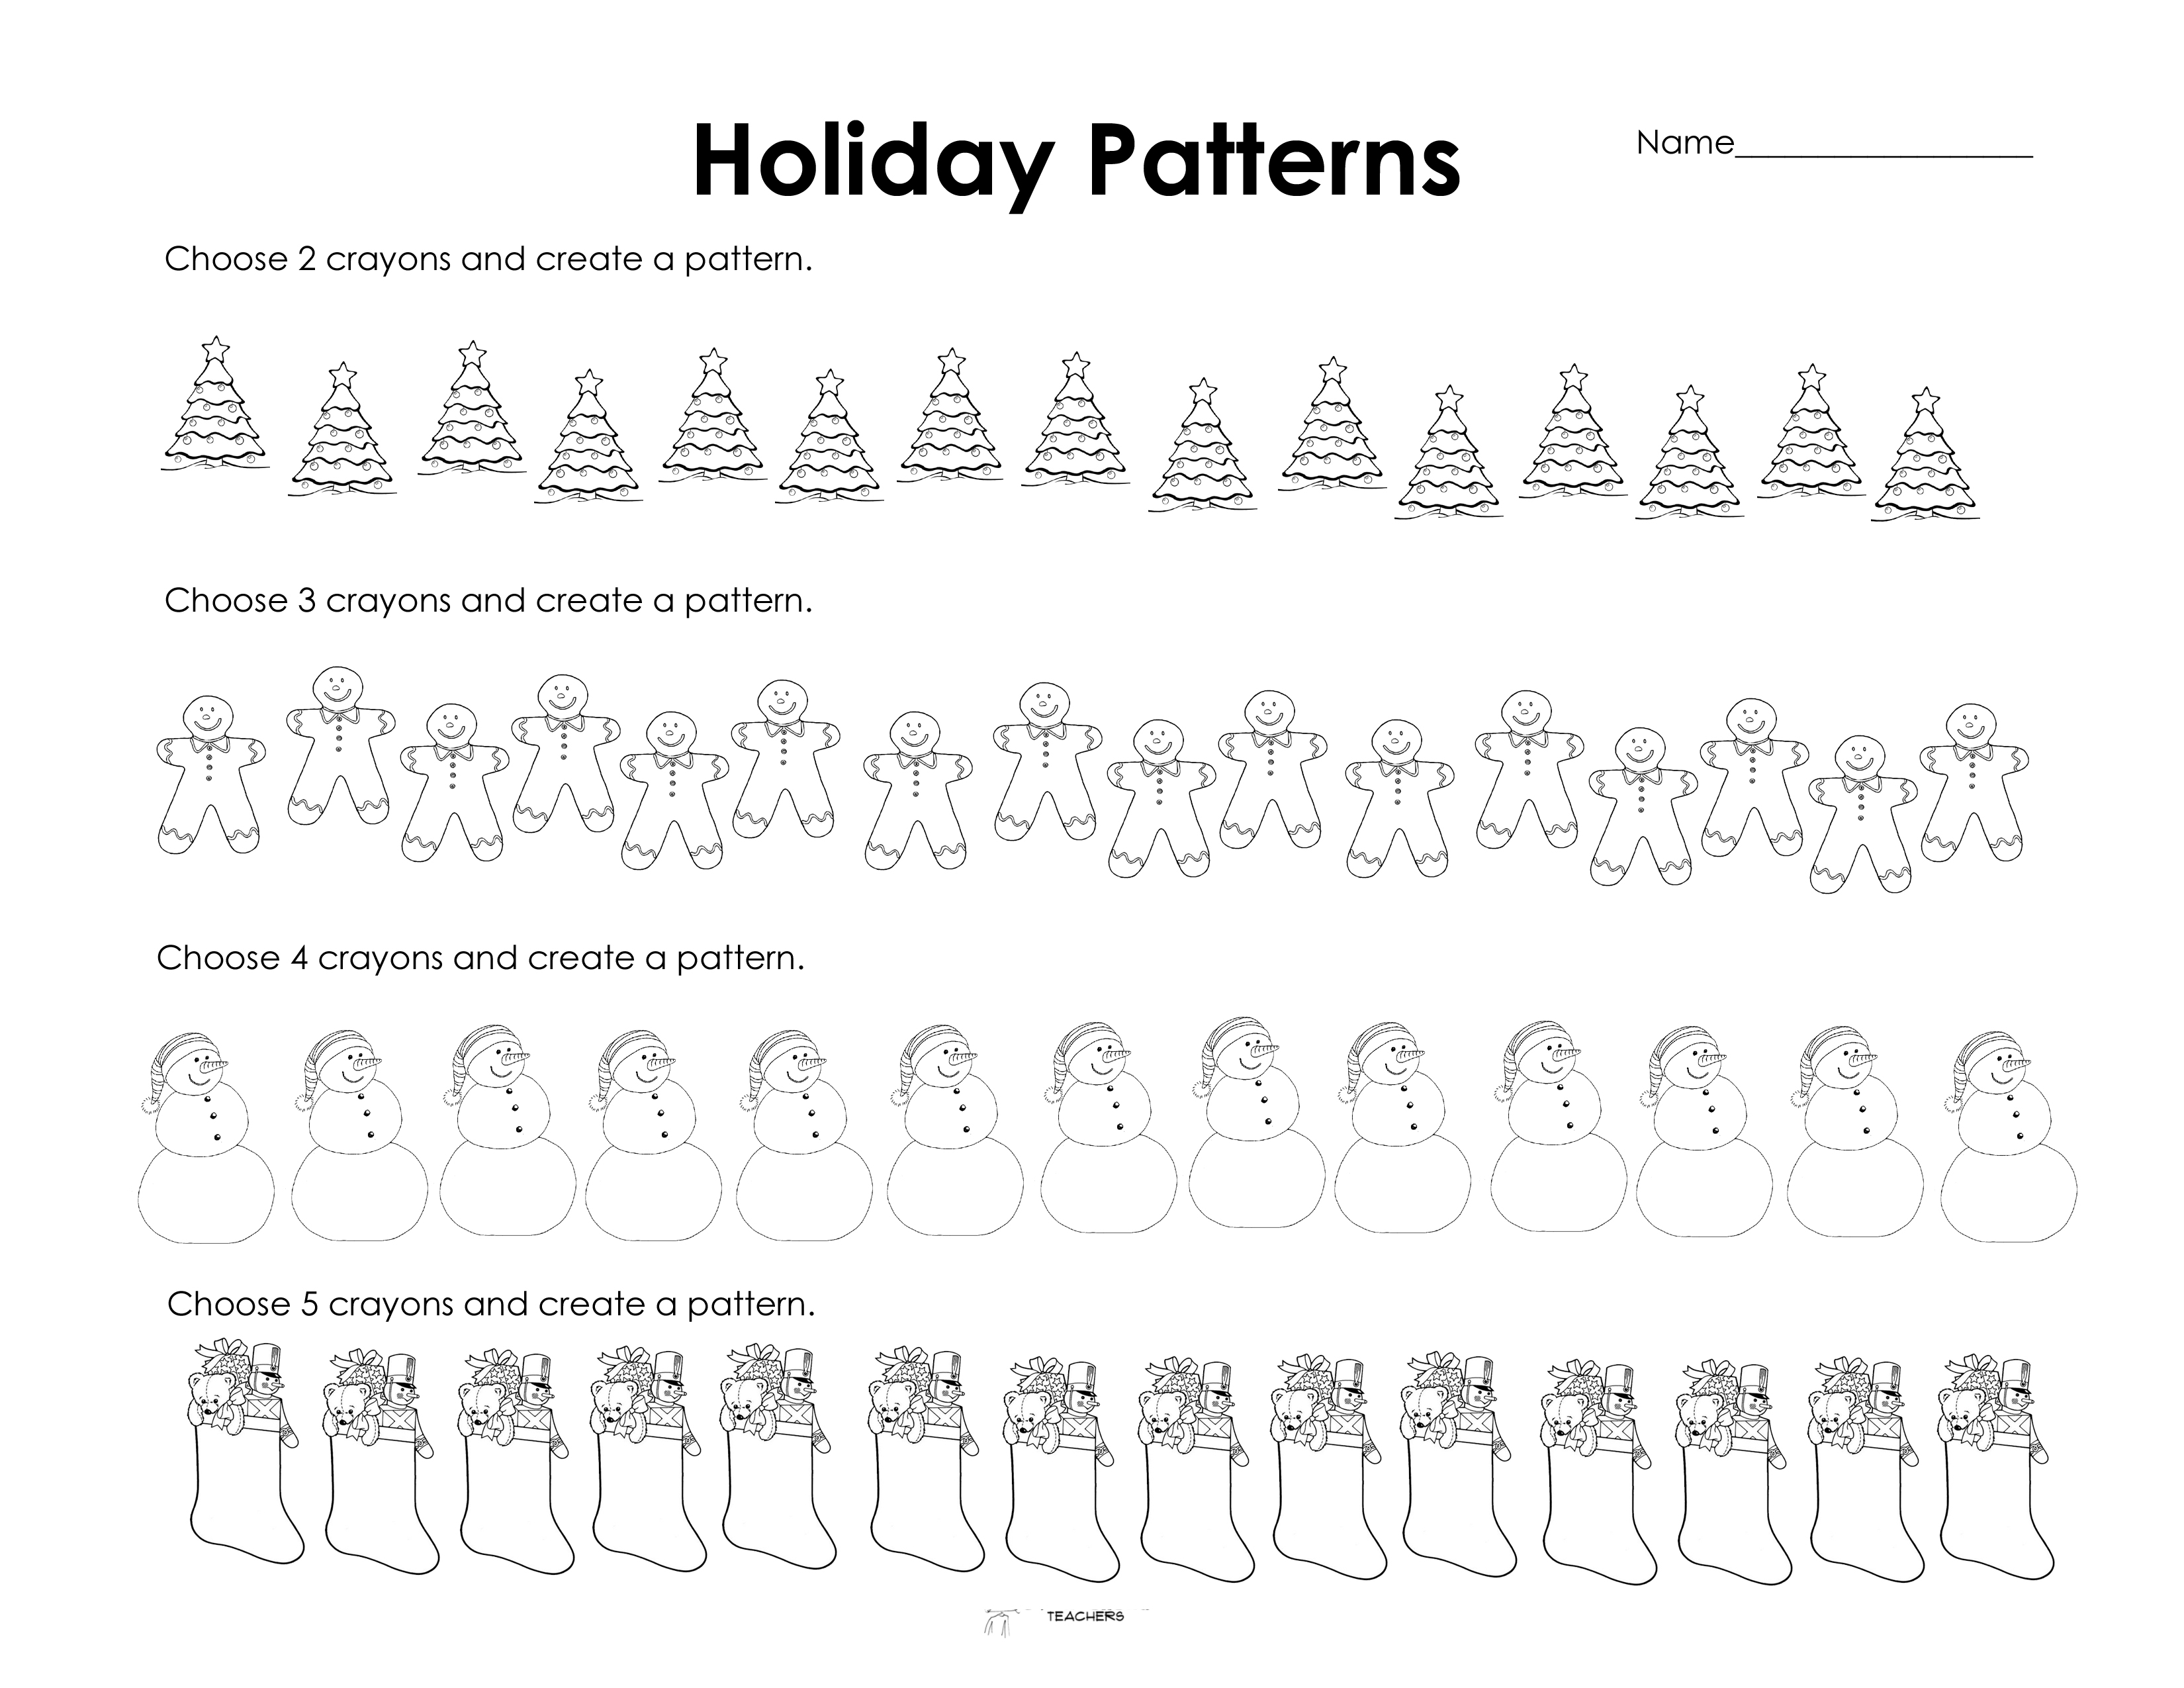 Holiday Patterns Free Worksheet